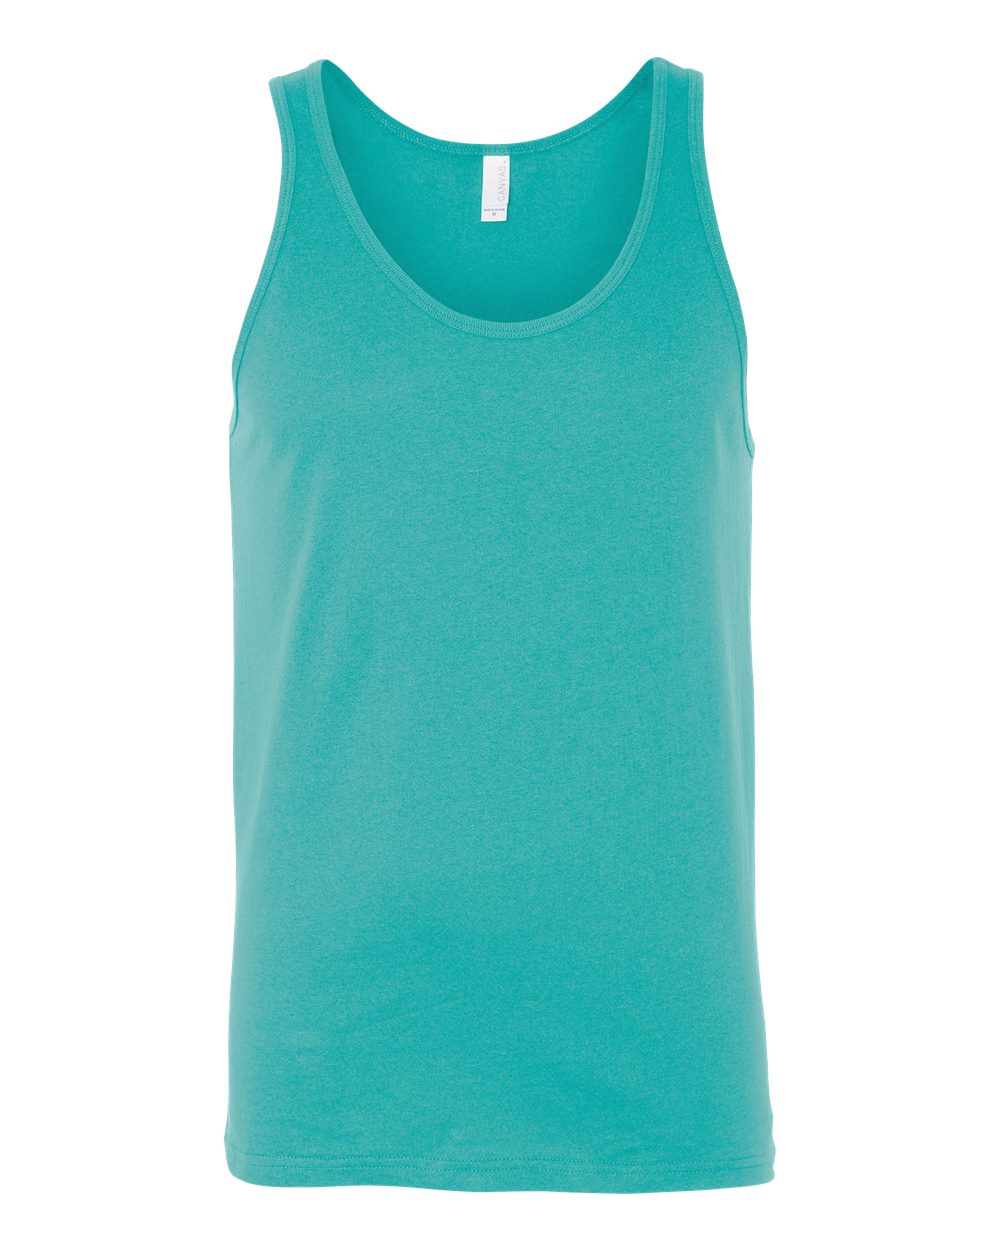 Bella_+_Canvas_3480_Teal_Front_High.jpg